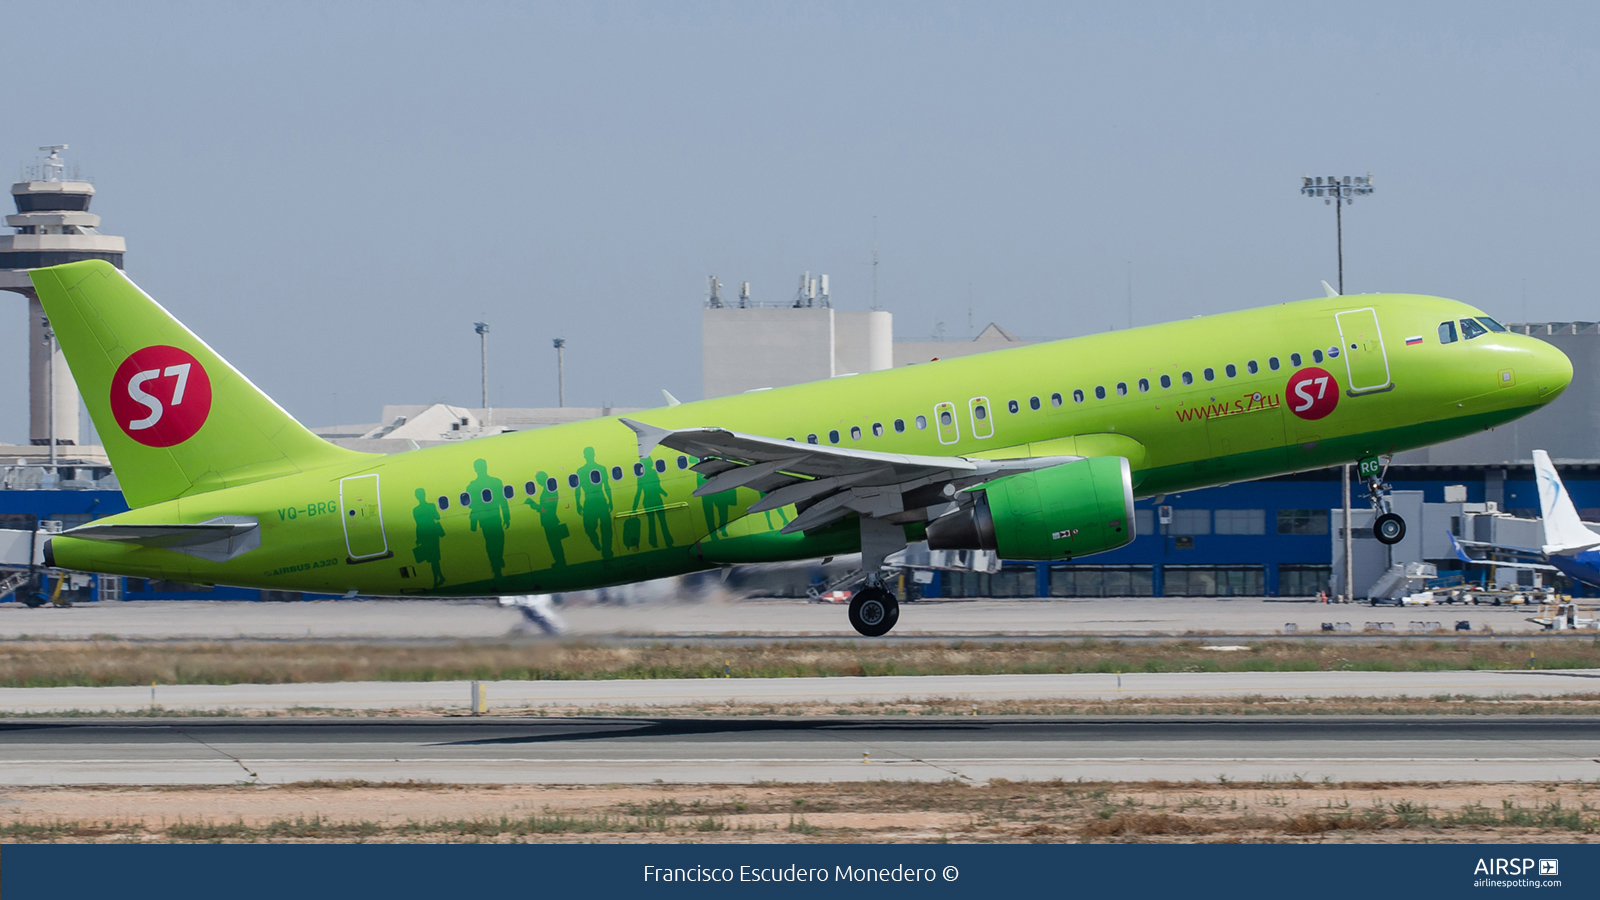 S7 Airlines  Airbus A320  VQ-BRG